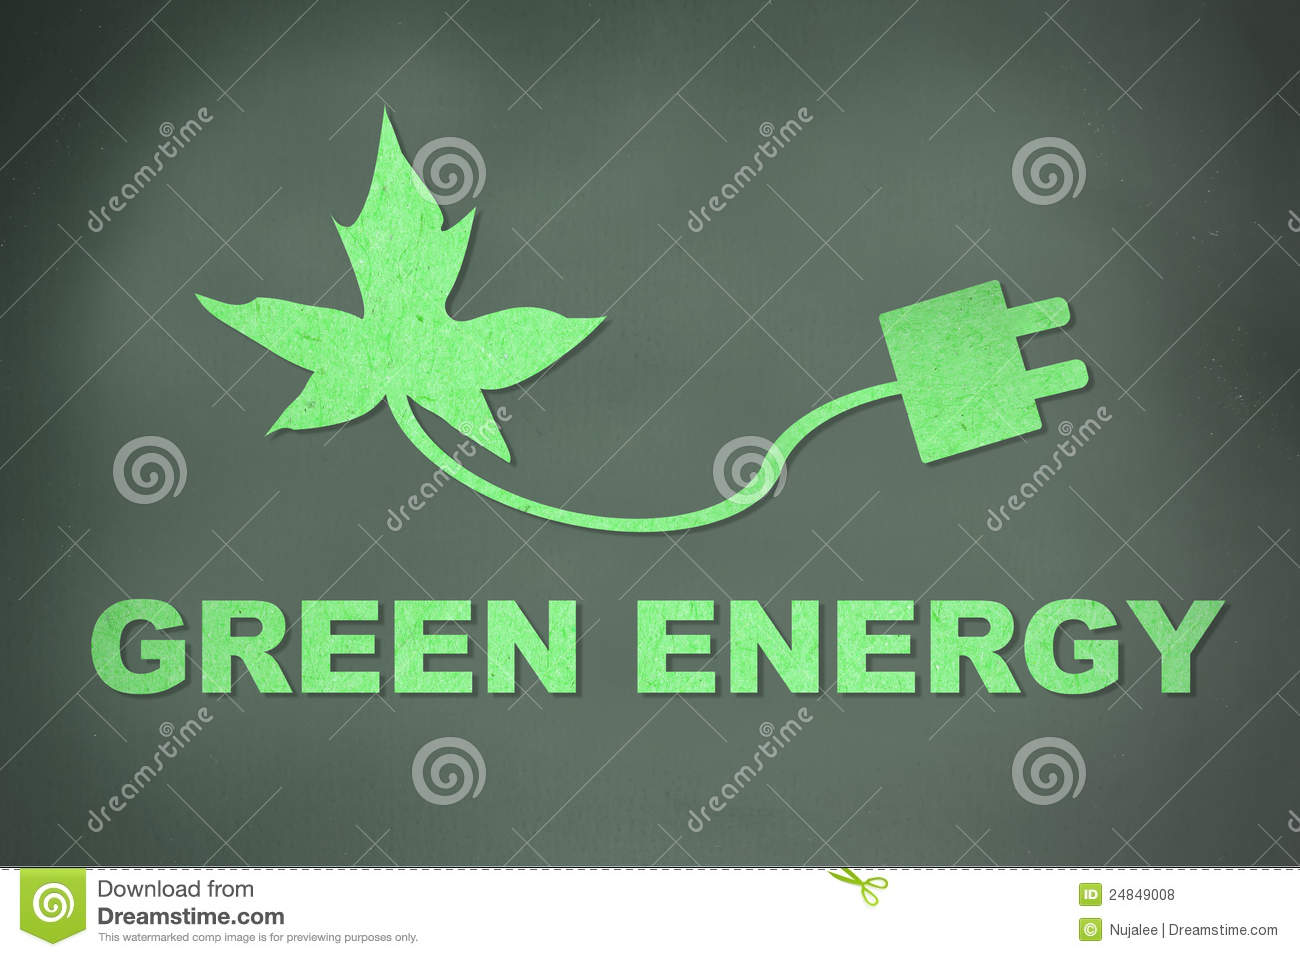 renewable resources and our environment essay Conserving energy - renewable and non-renewable resources essaysconserving energy is important, since the world will not be able to depend on nonrenewable resources.